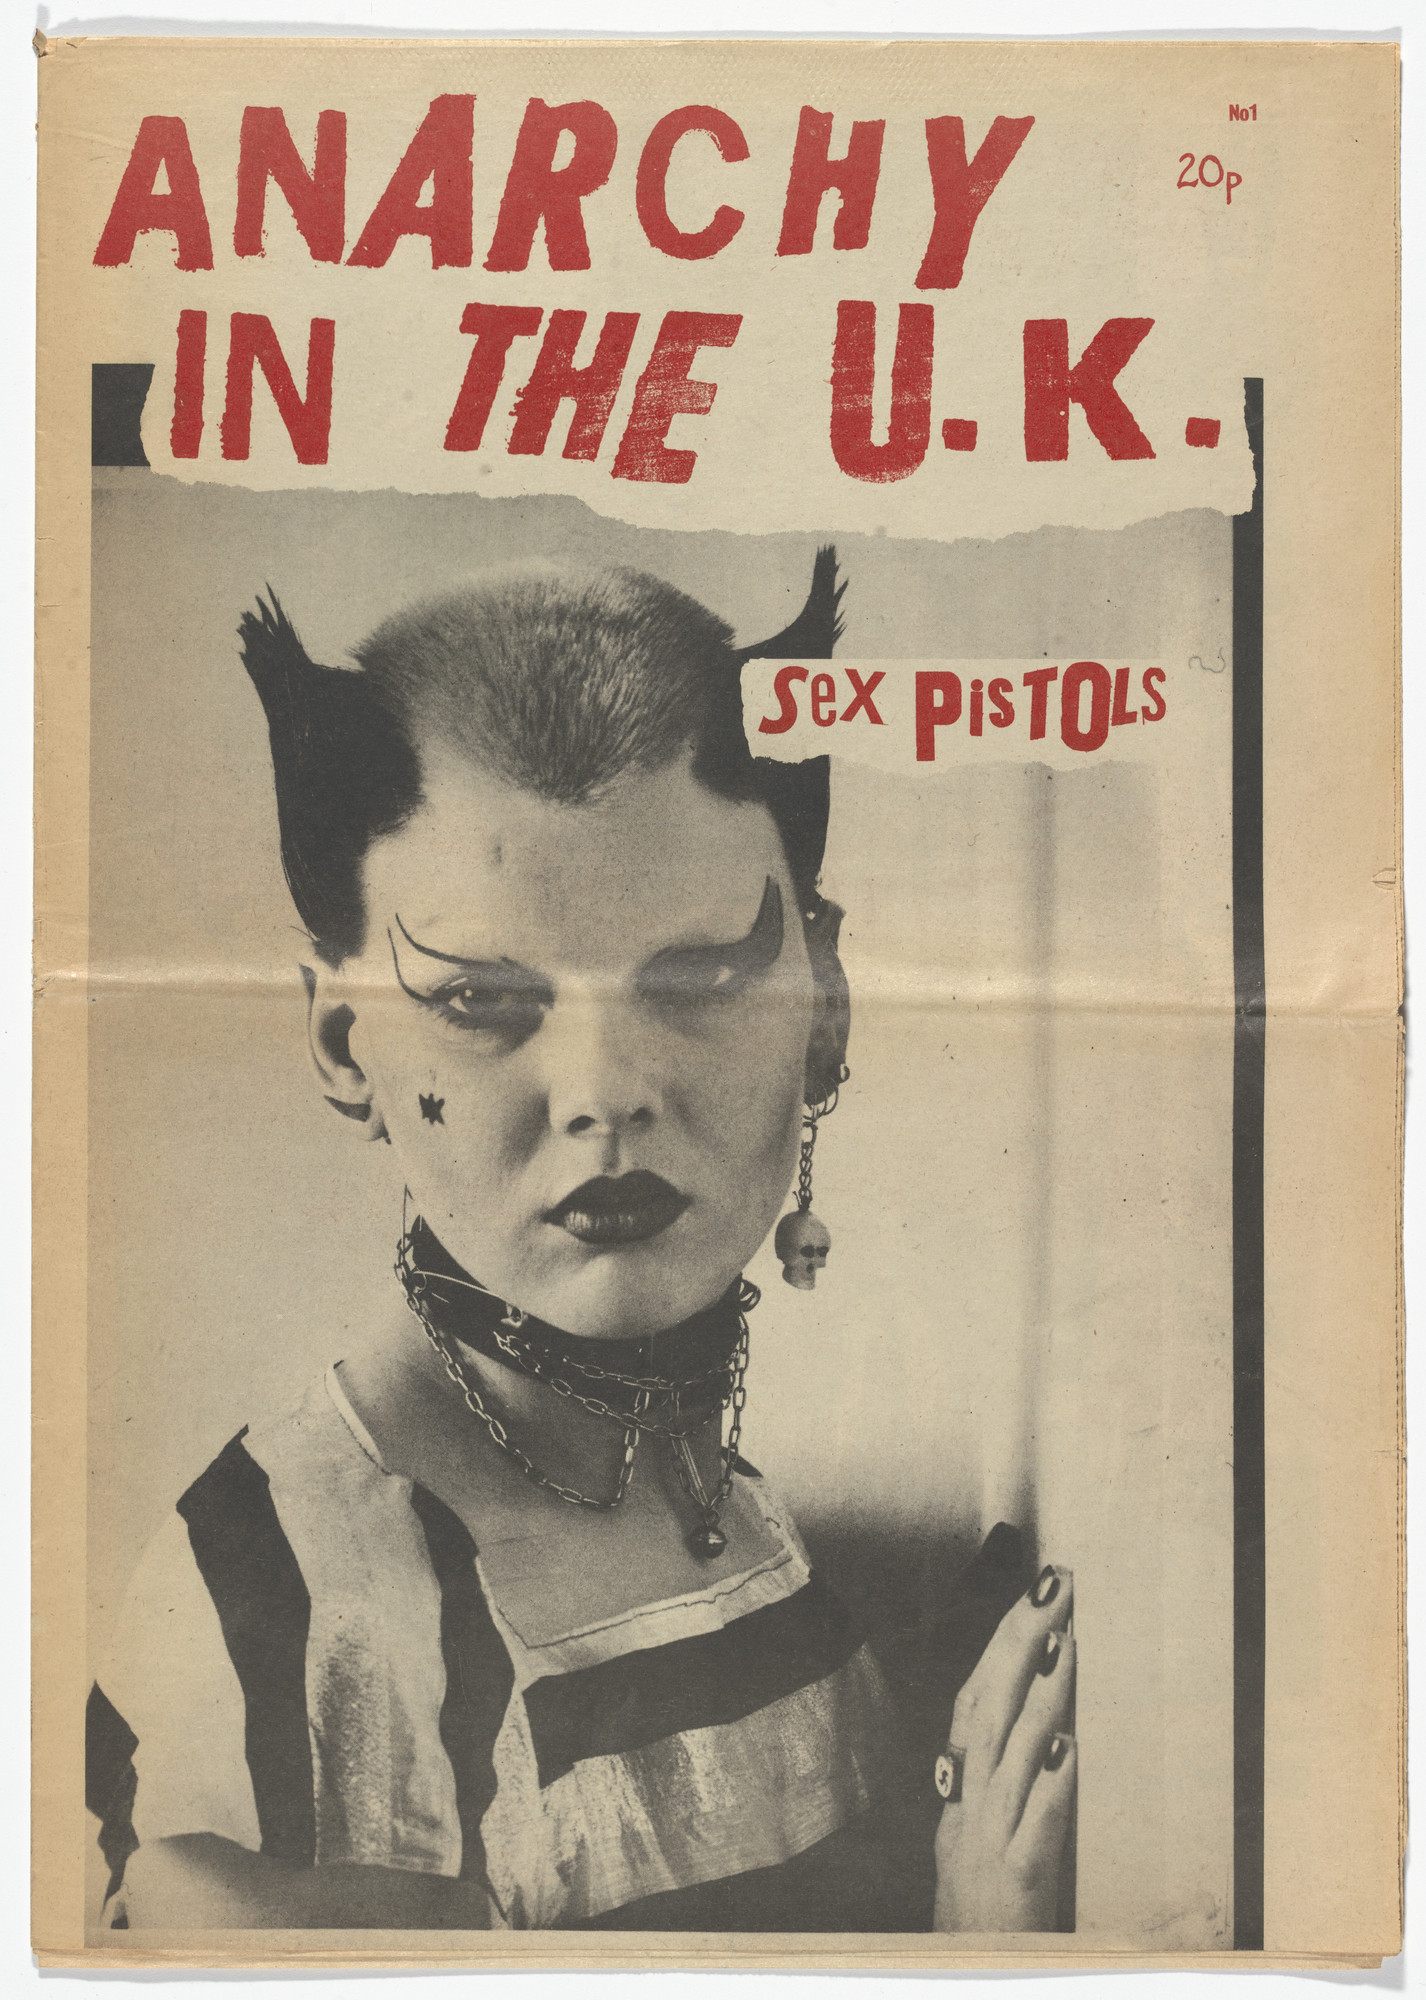 Jamie Reid, Sophie Richmond, Vivienne Westwood, Ray Stevenson. Anarchy in the UK no. 1 (Zine cover featuring Soo Catwoman). 1977